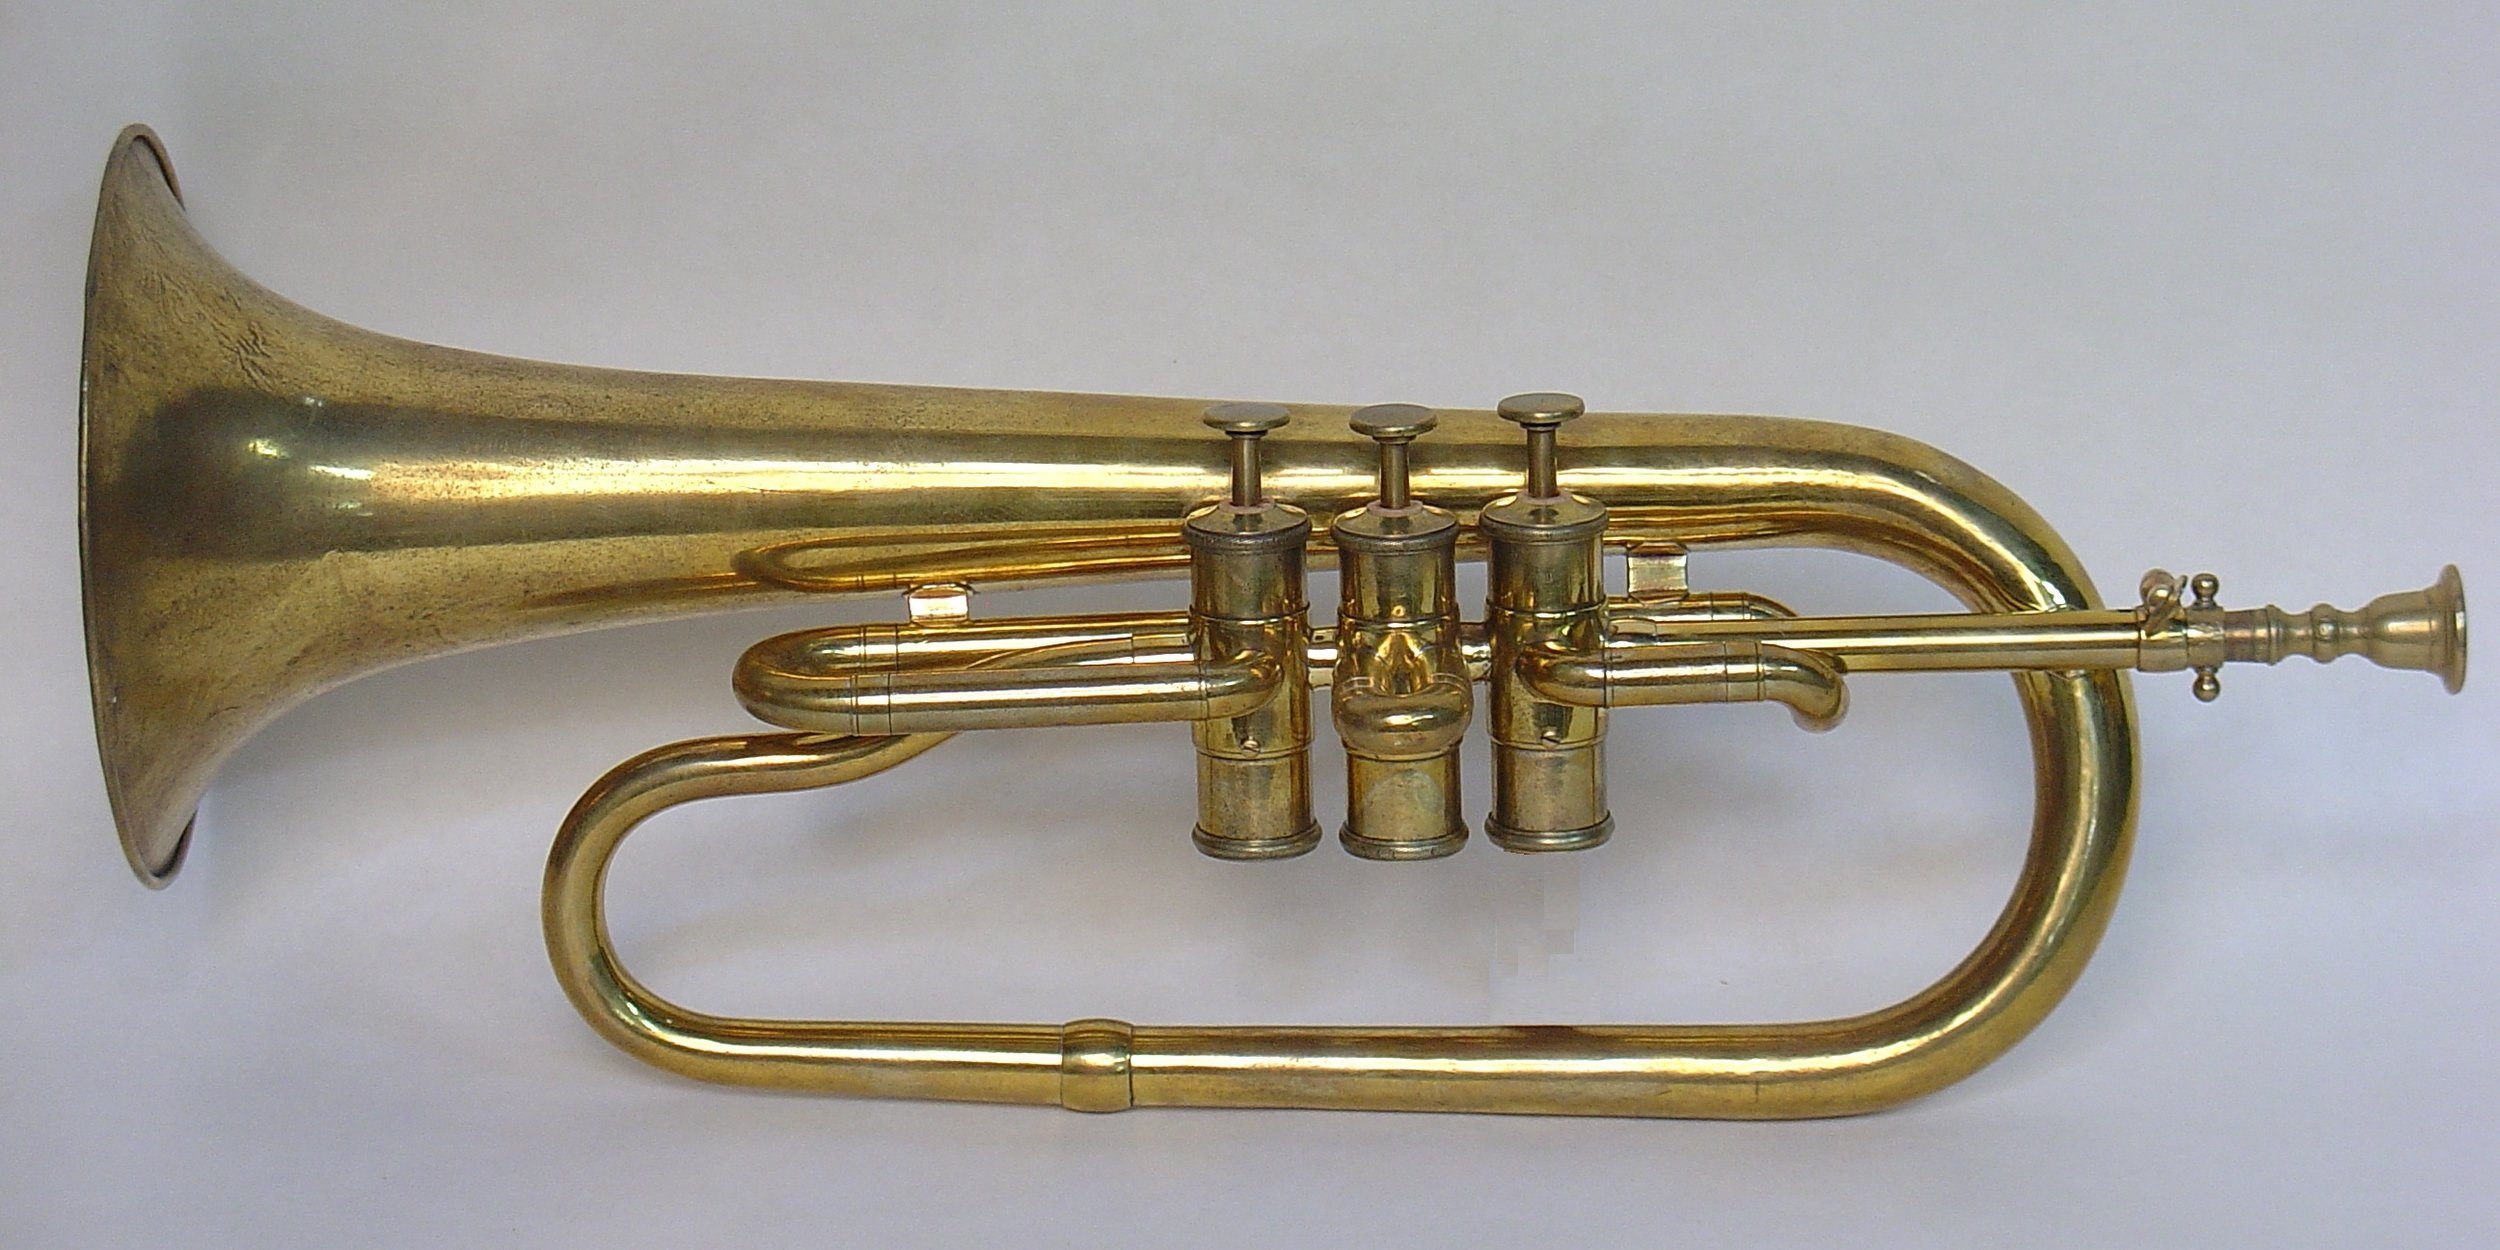 1840s Saxhorn, Paris and New Orleans